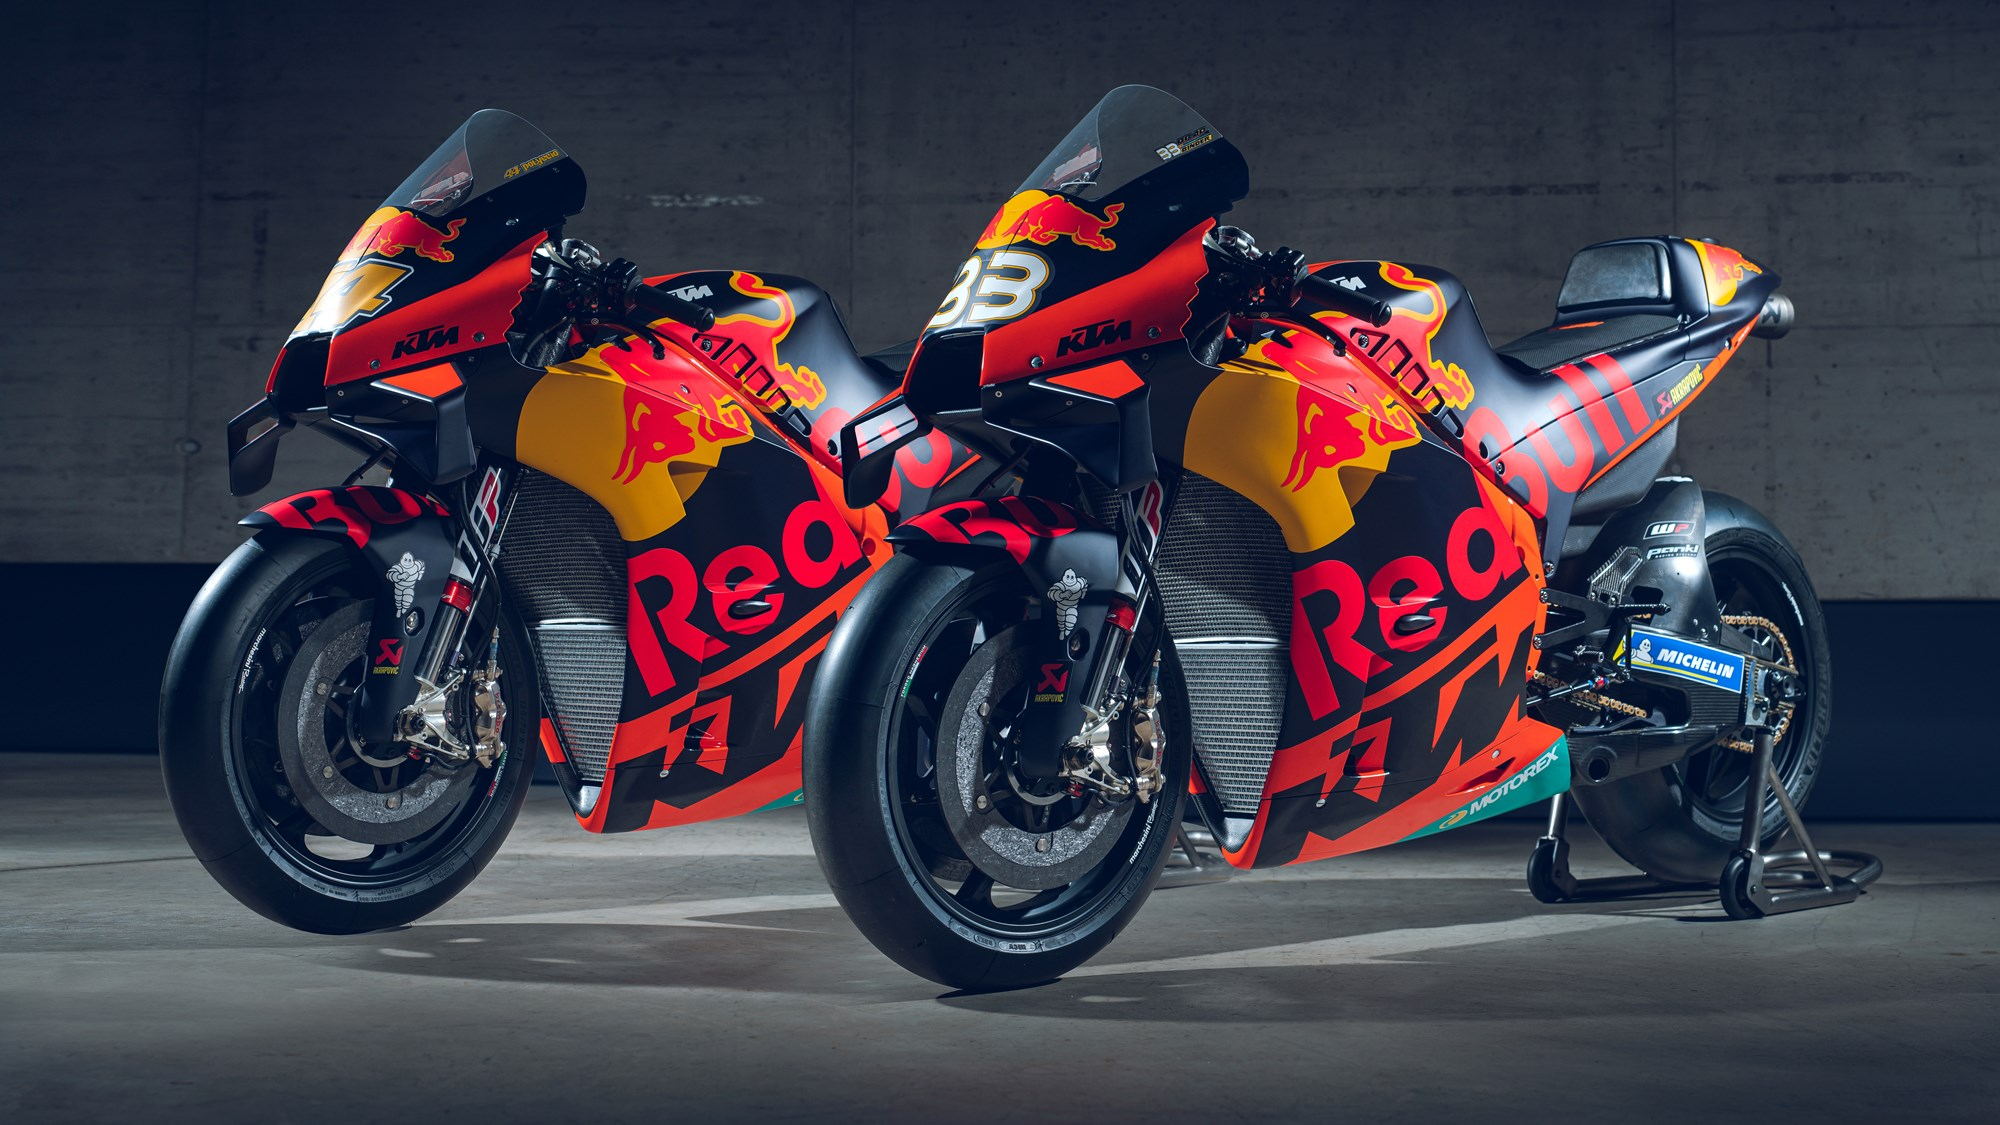 2020 KTM RC16 MotoGP livery official